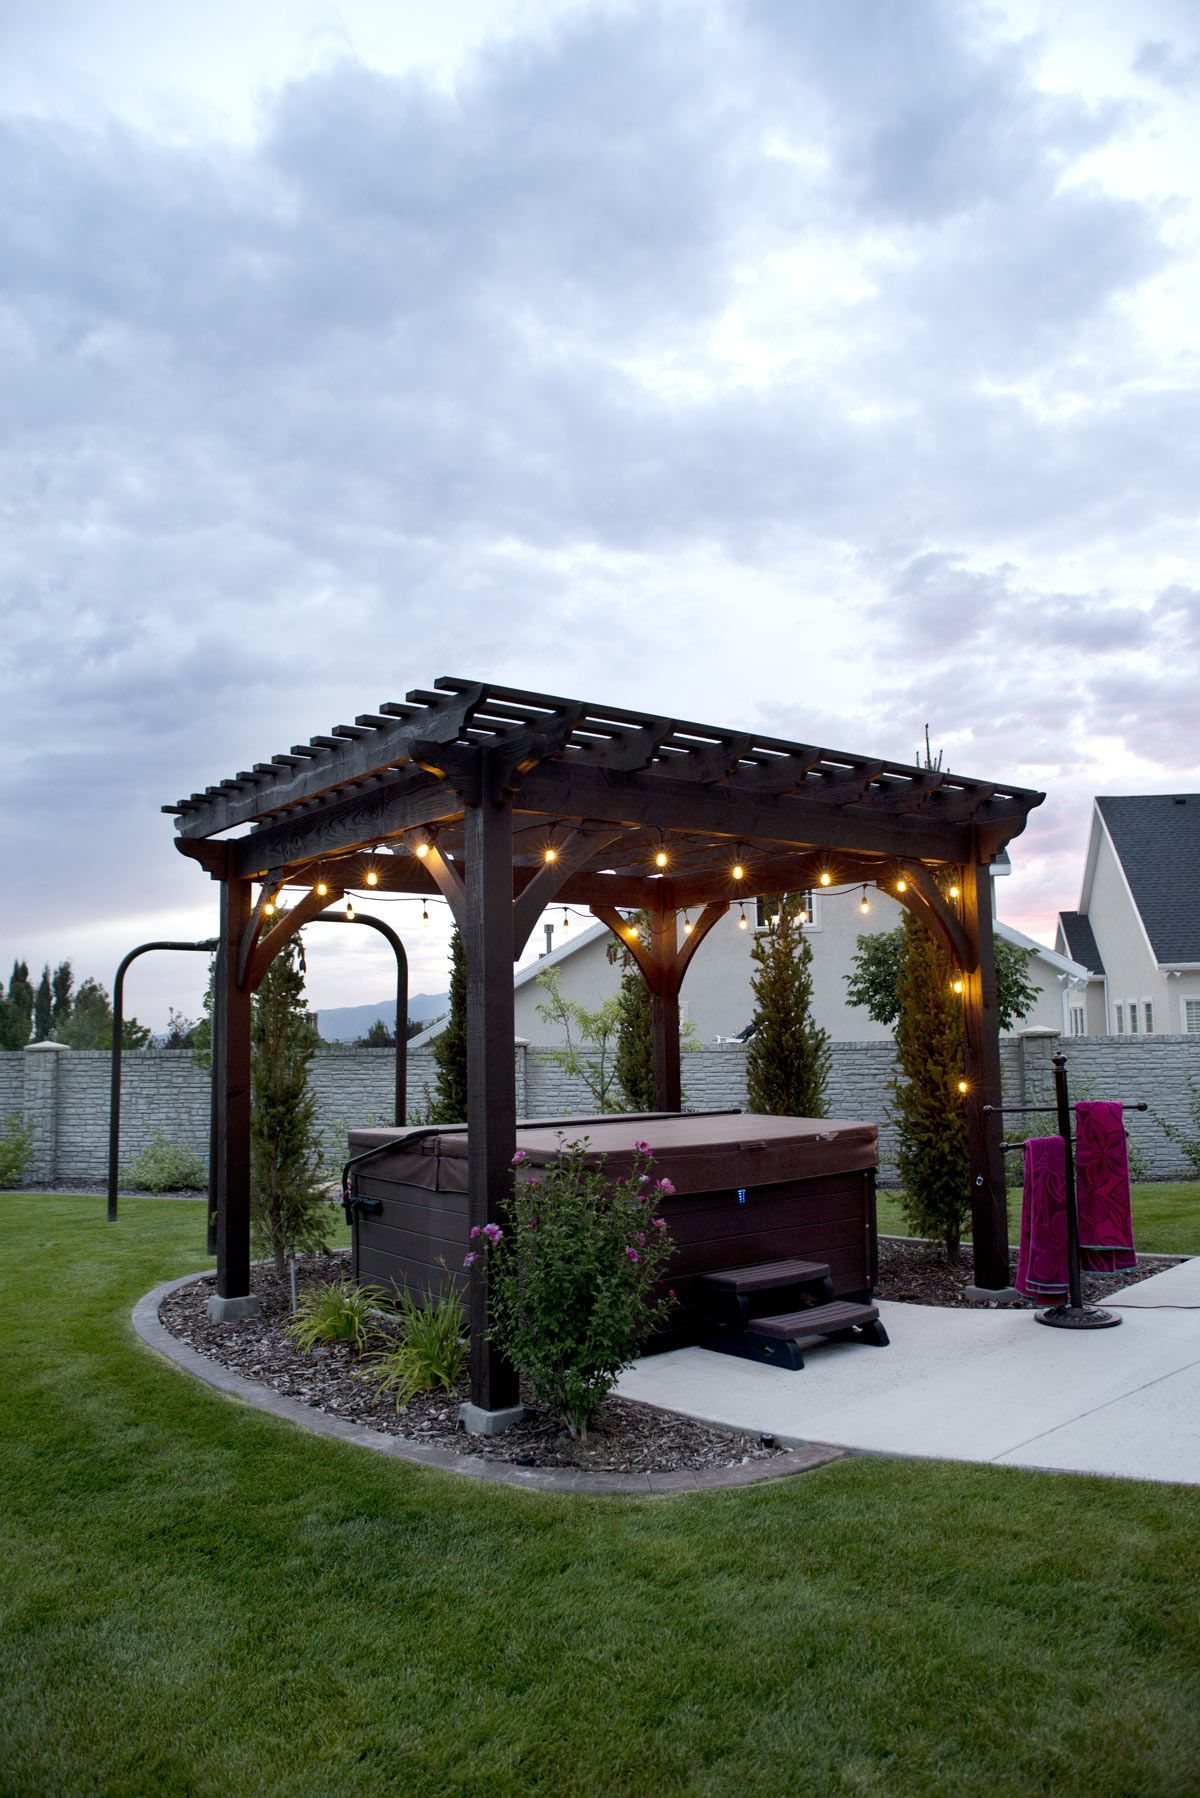 Heavenly haven diy pergola over hot tub with a timber for Diy hot tub gazebo